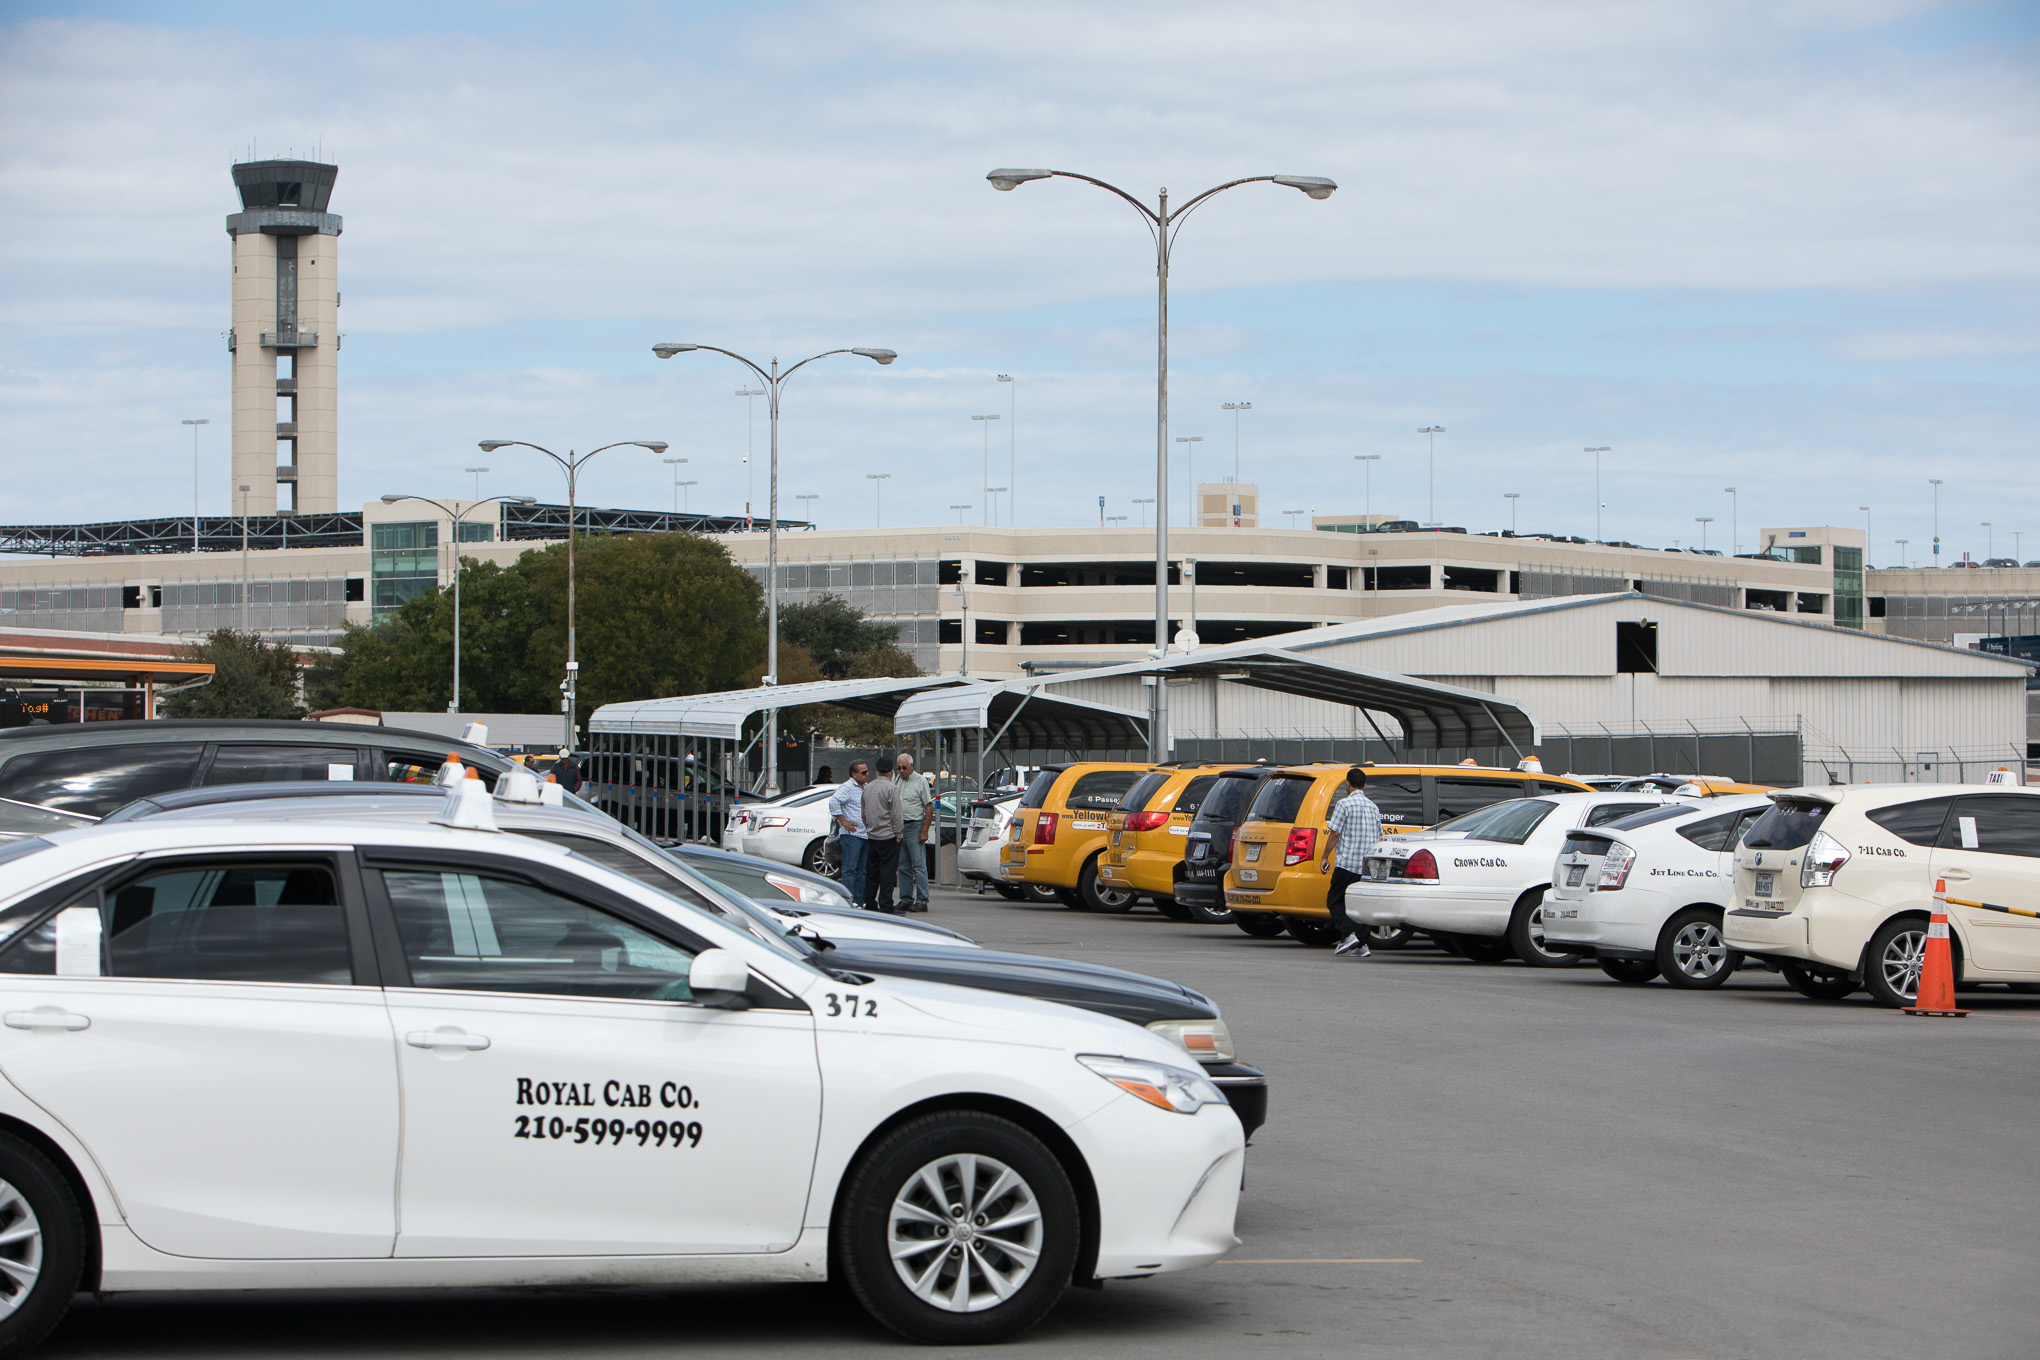 Taxi vehicles line parking spaces at the airport orange lot.